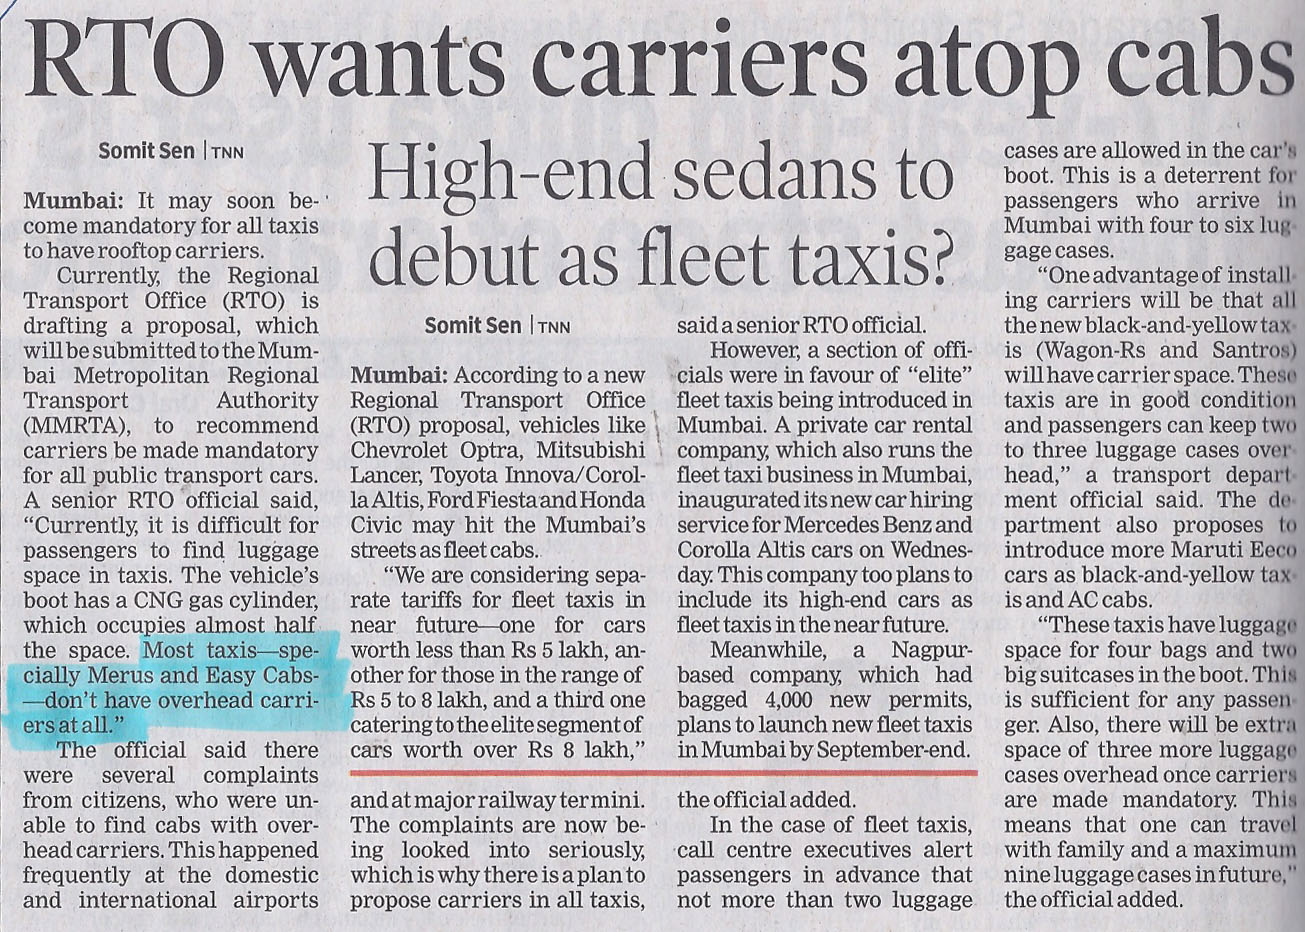 RTO wants carrier atop cabs - Meru Cabs - Times of India